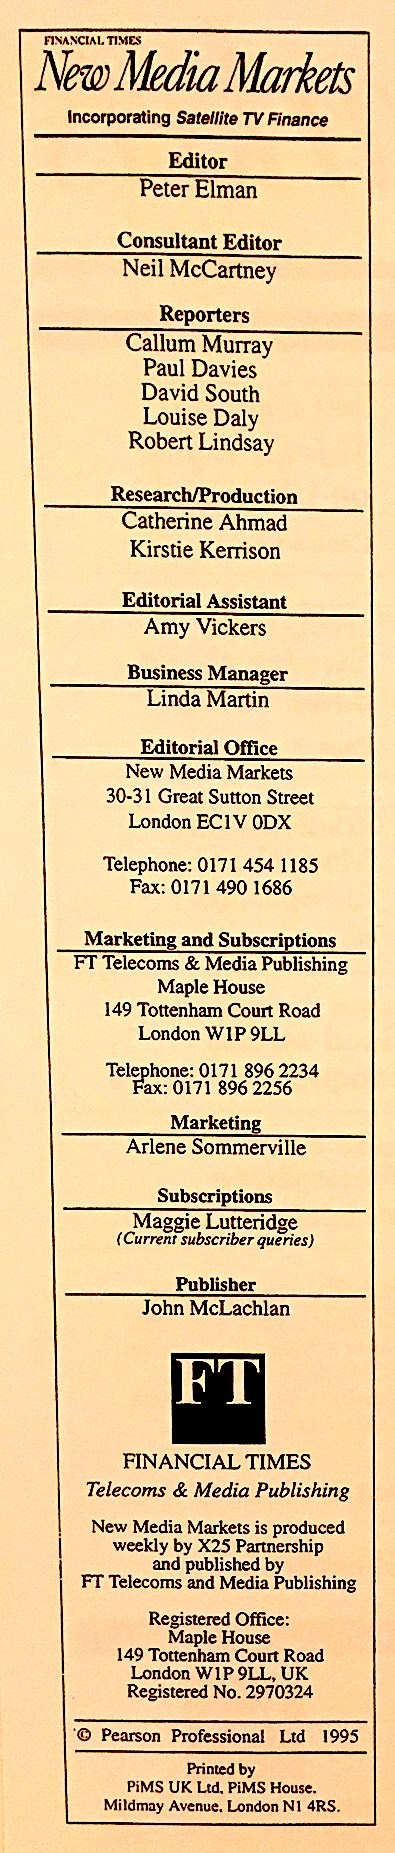 New Media Markets masthead 1995